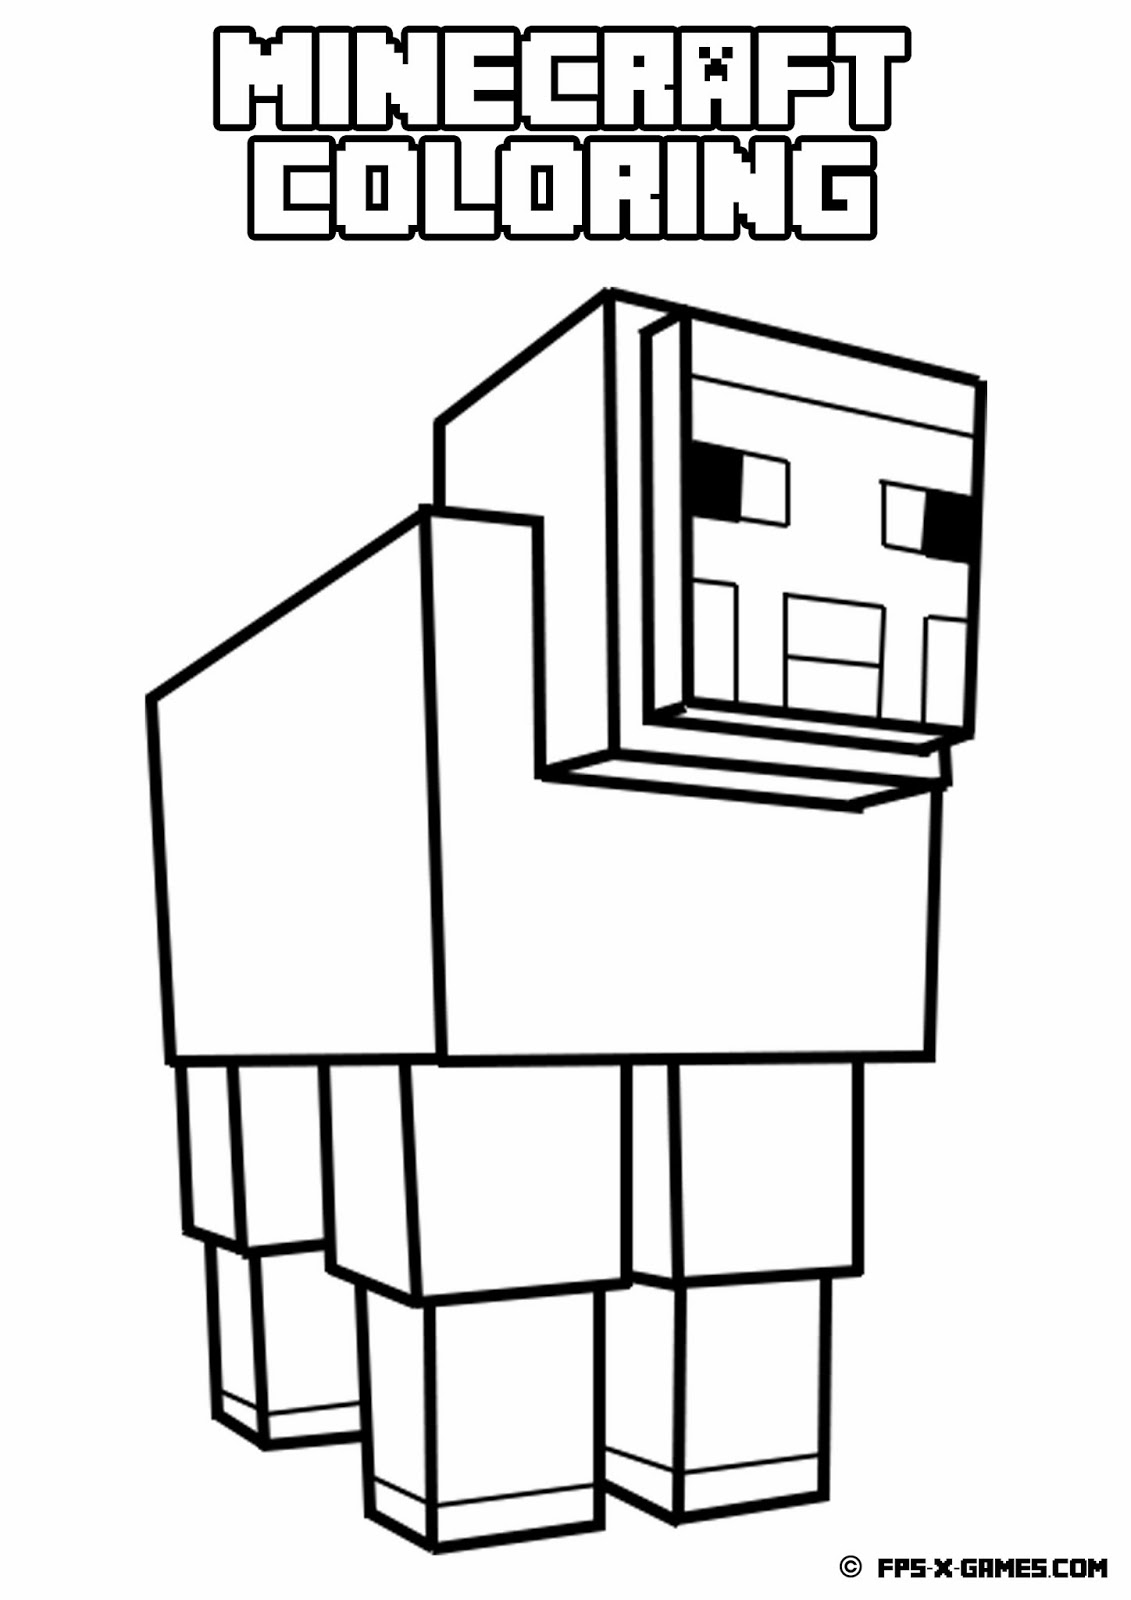 porco minecraft likewise  further  in addition  in addition ender dragon 1 likewise latest cb 20160423072009 also  moreover  also  as well  also . on black skeleton minecraft coloring pages